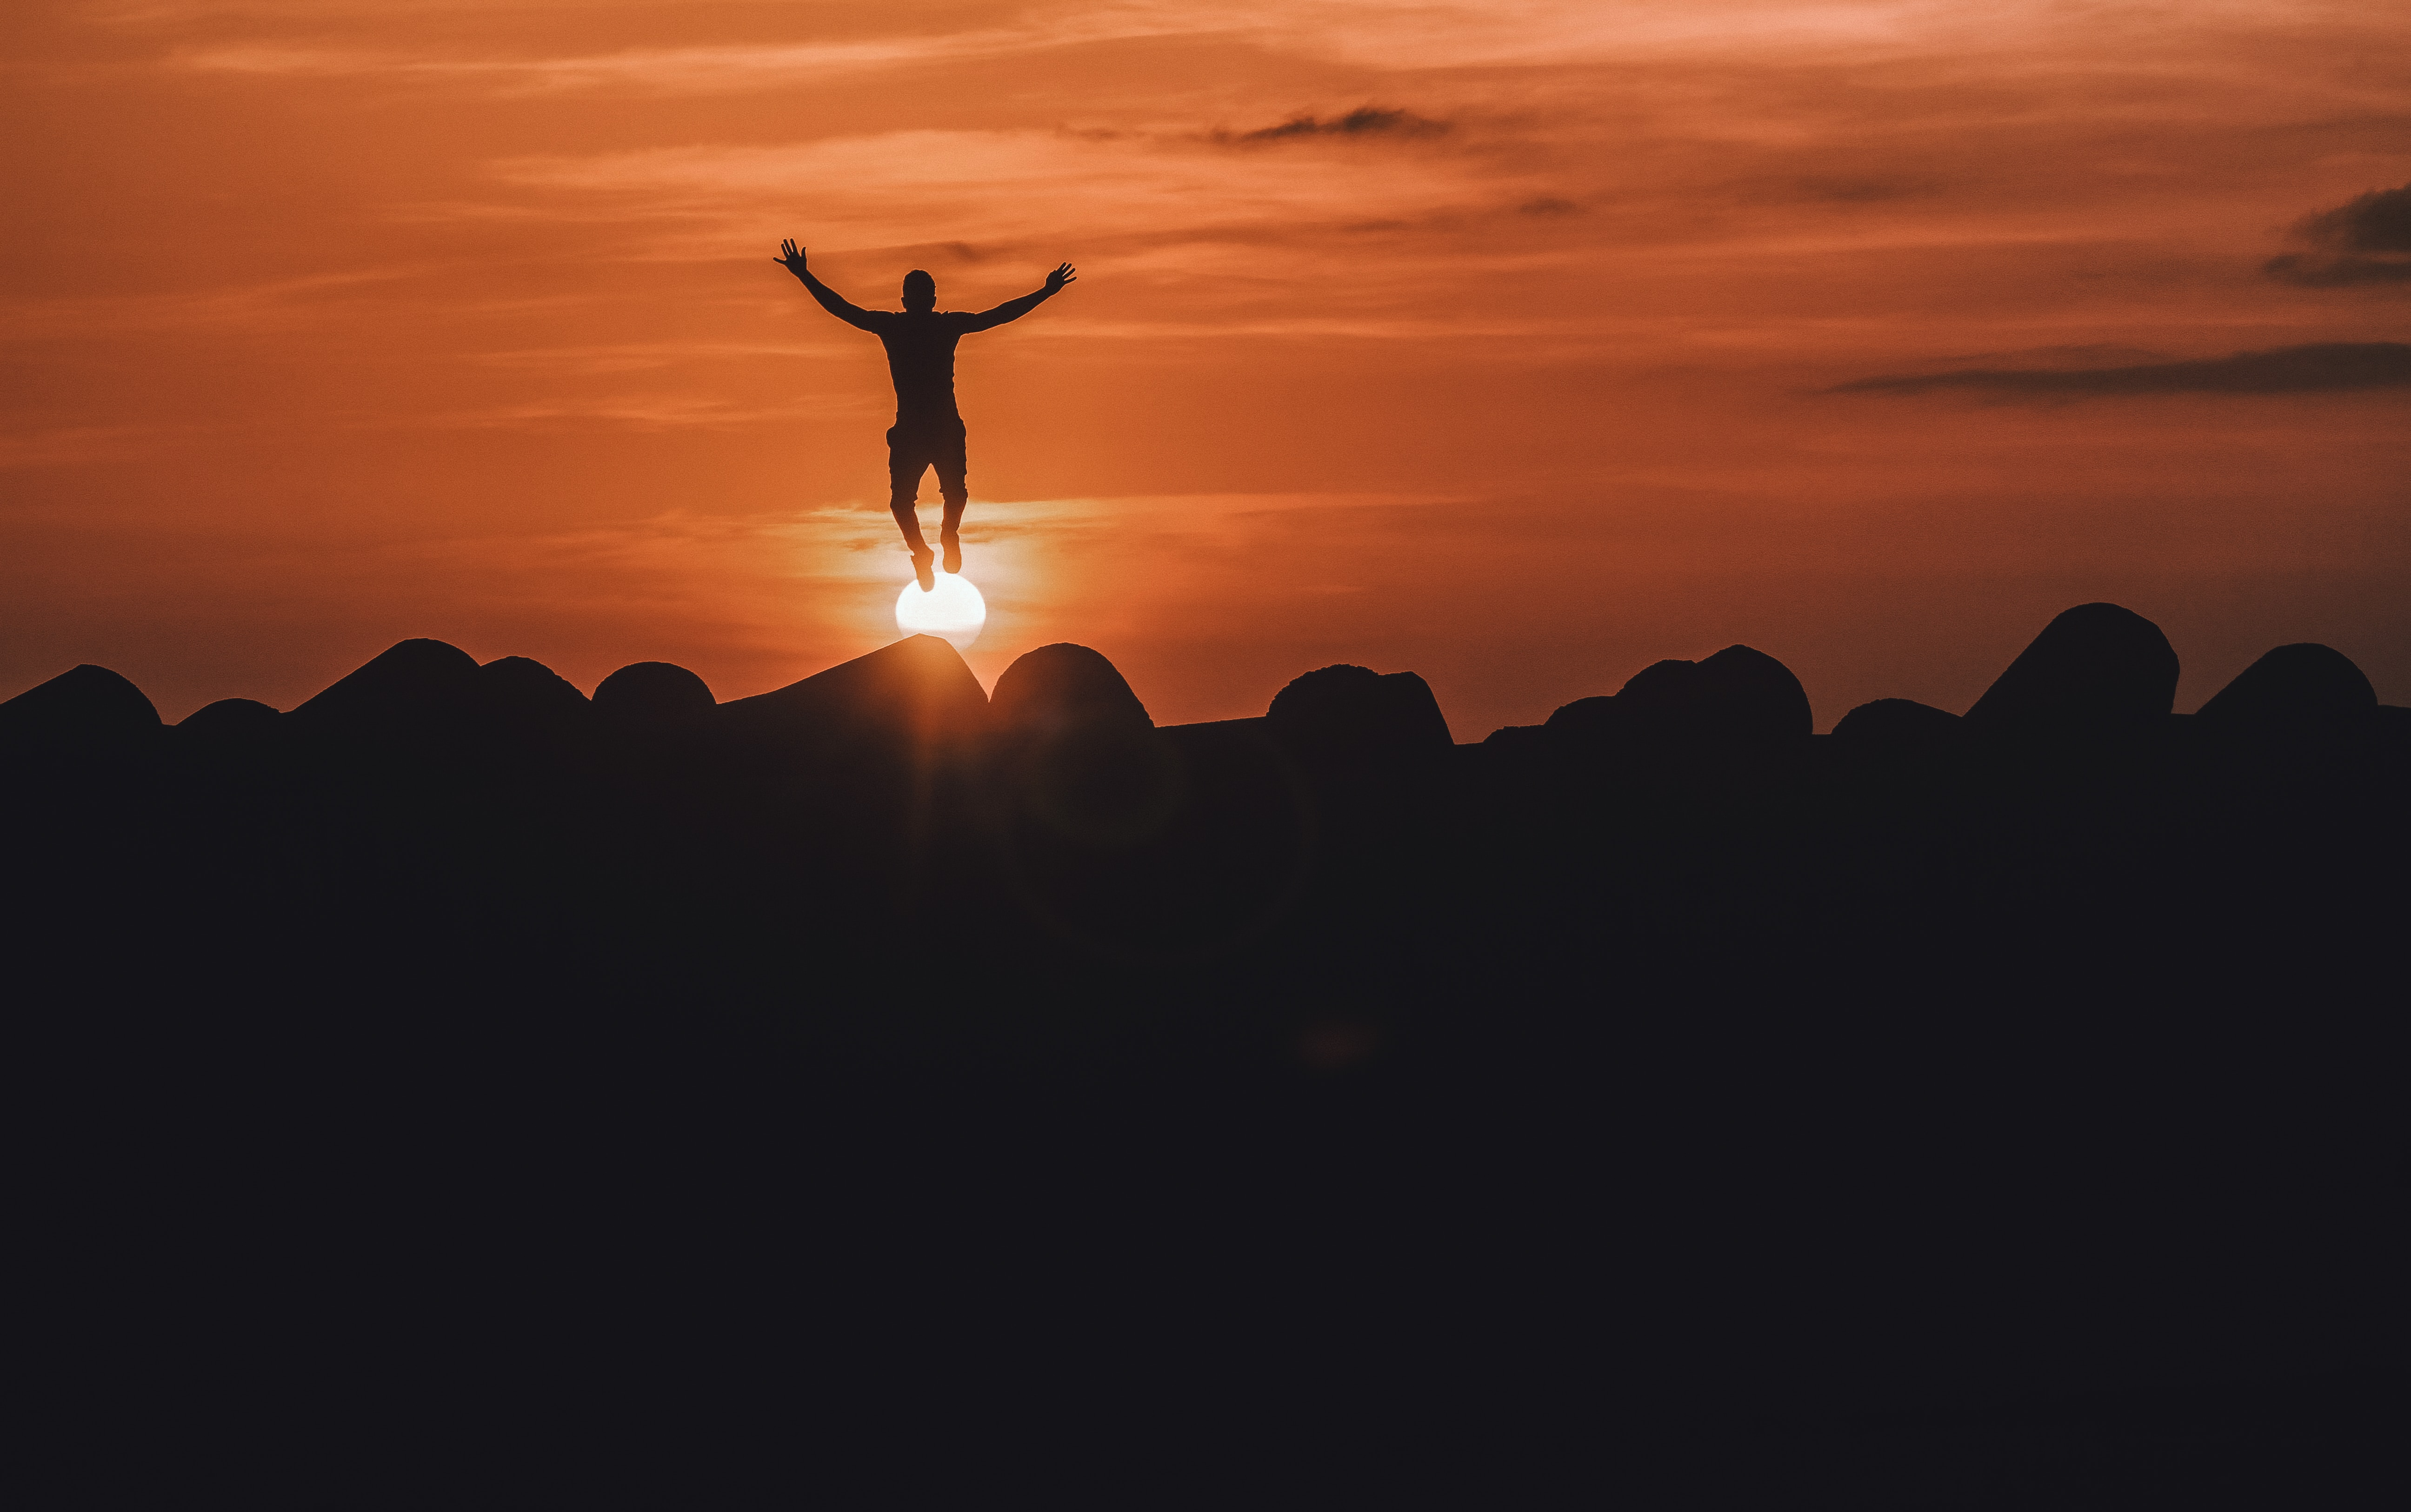 A man jumping with joy in the sunset.